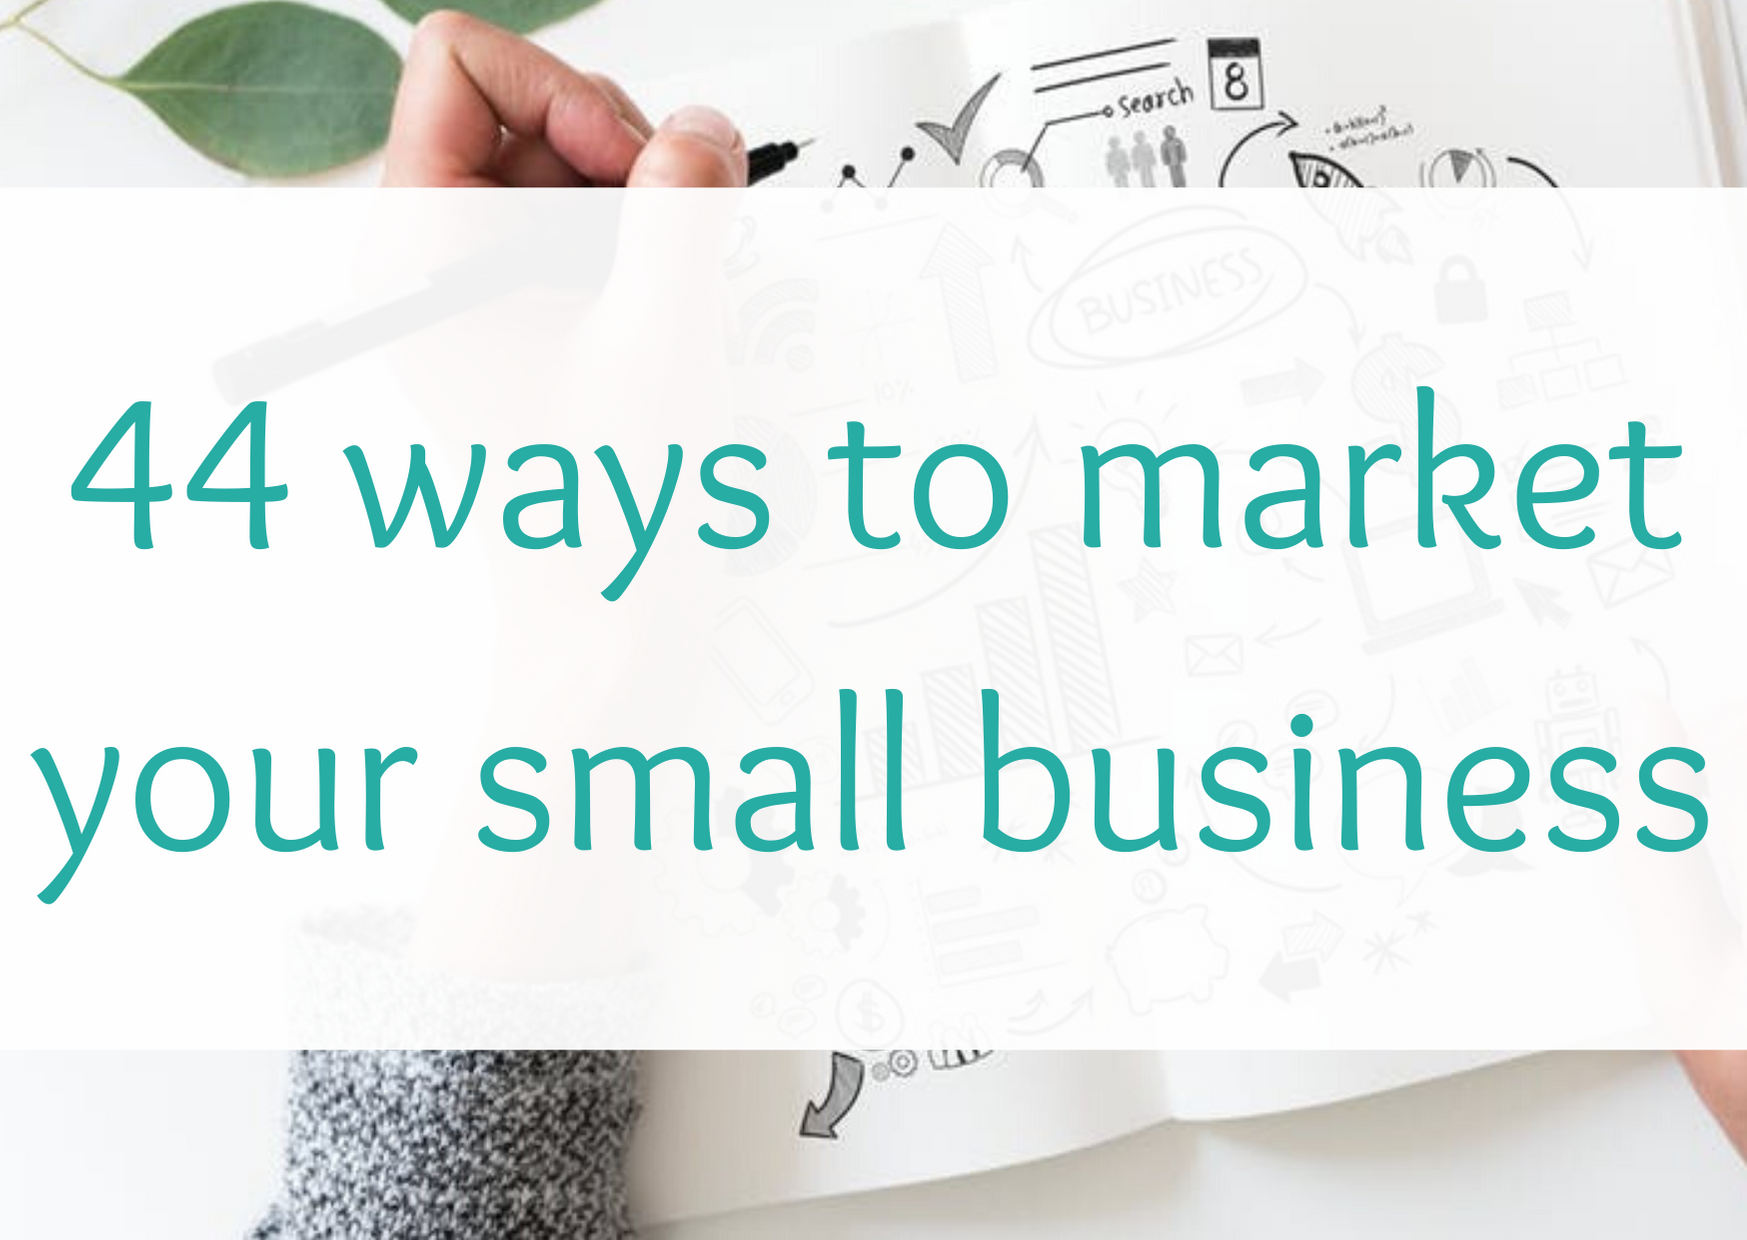 44 ways to market your small business